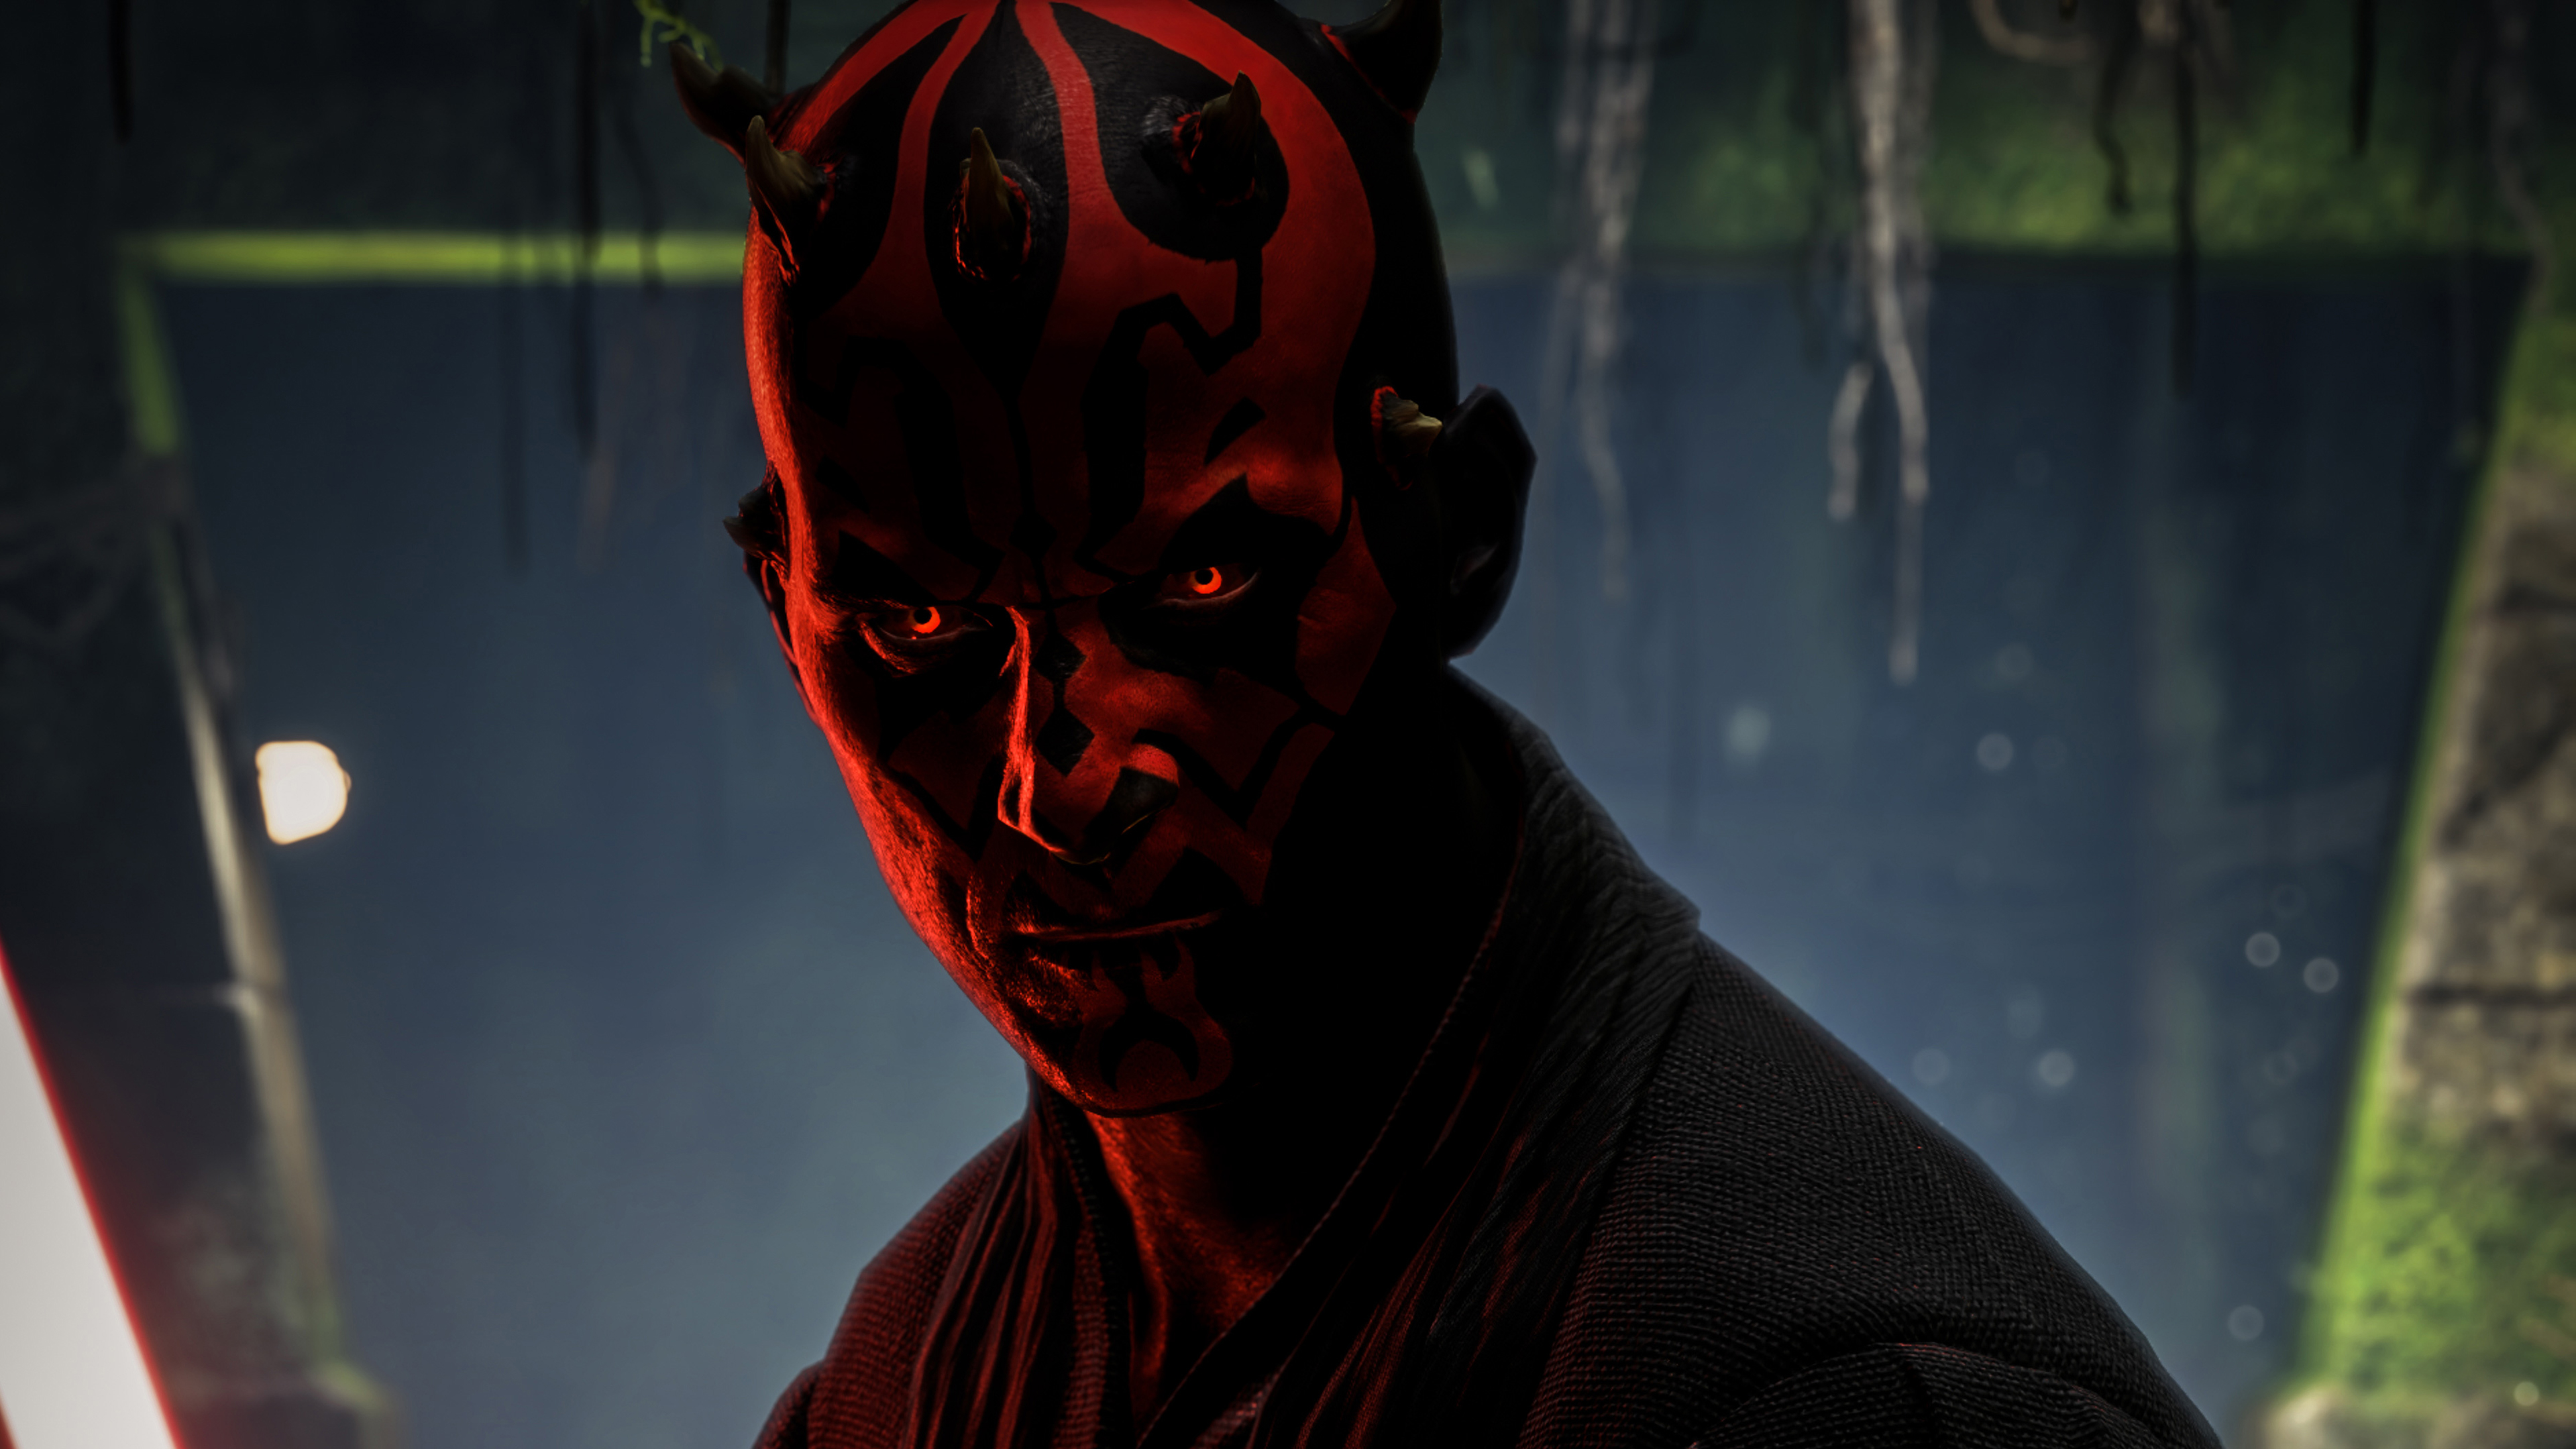 Darth Maul From Star Wars 4k Wallpapers Hd Wallpapers